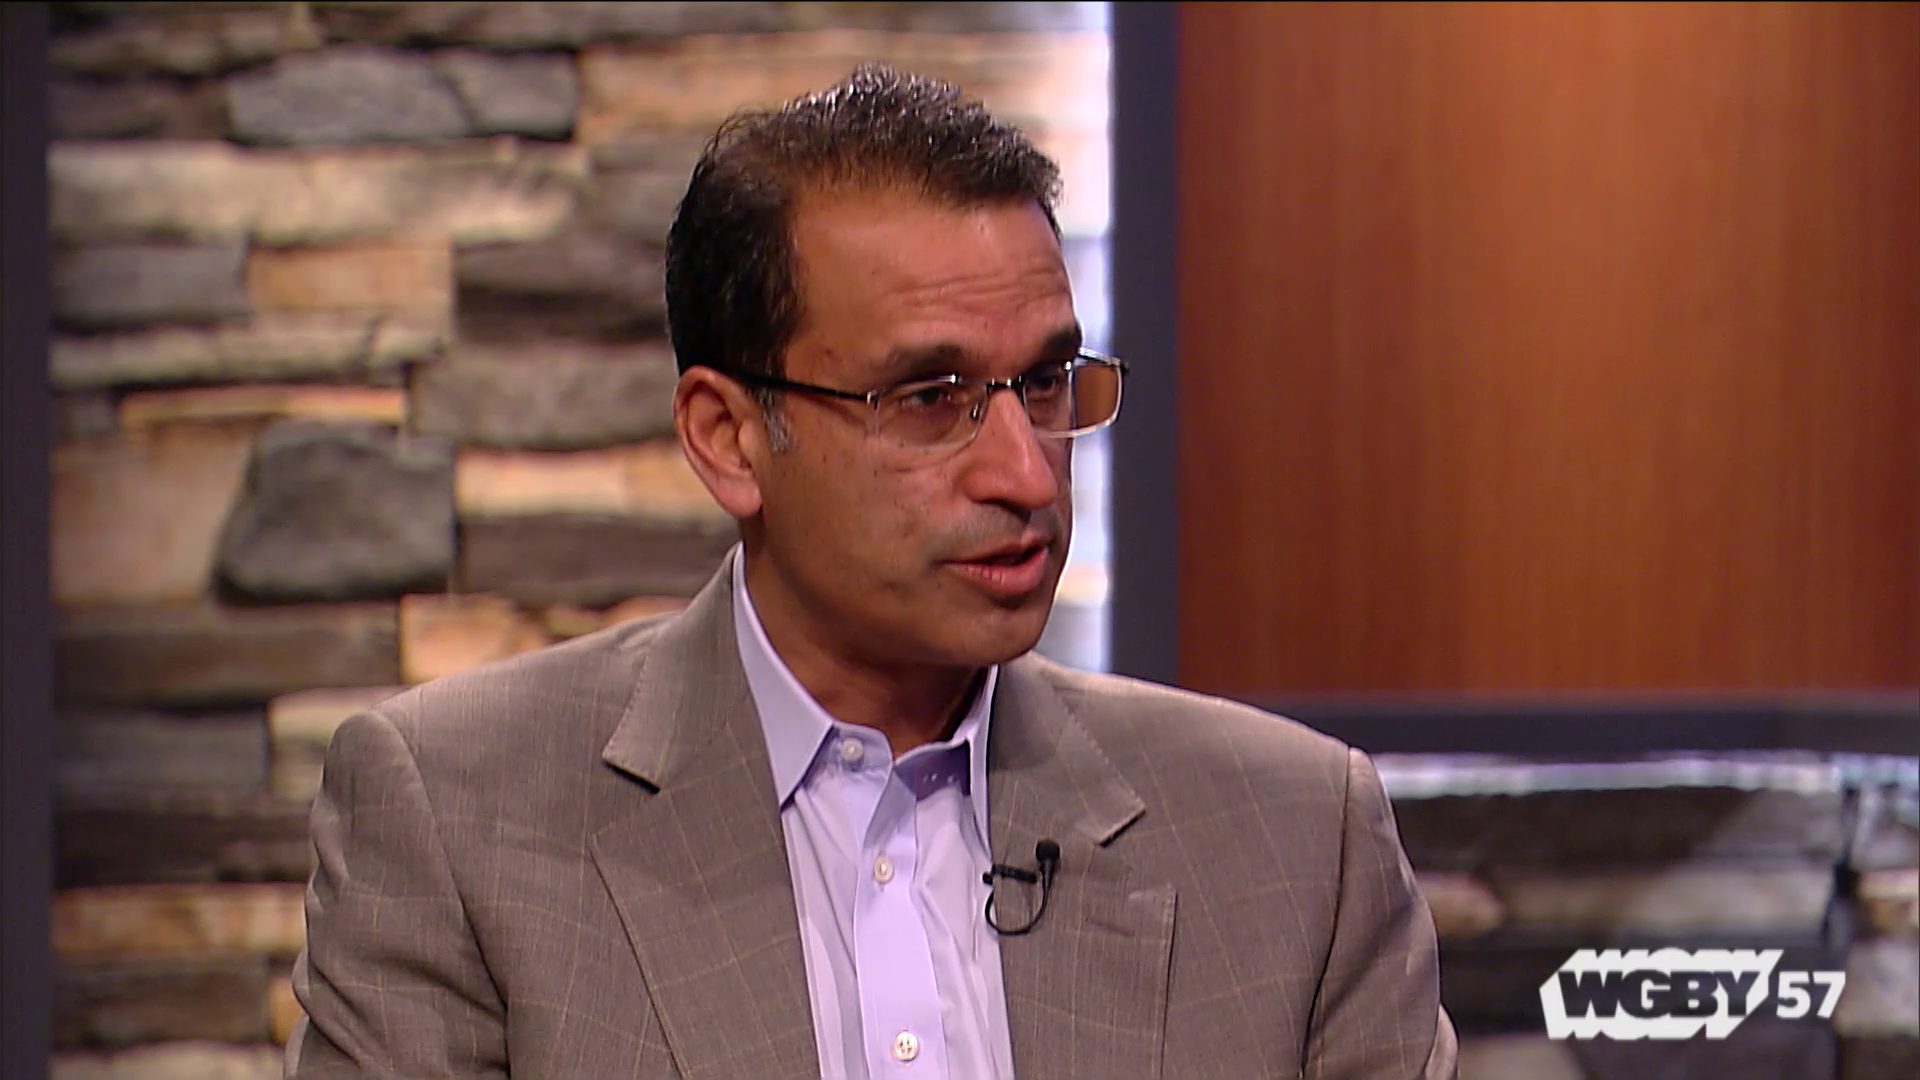 As doctors learn more about the effects of sports-related concussions, they've encouraged coaches and athletes to follow strict concussion protocols instead of continuing to play. Mercy Medical Center neurosurgeon Dr. Kamal Kalia discuss sports-related concussions, the long-term problems they can cause, and more.